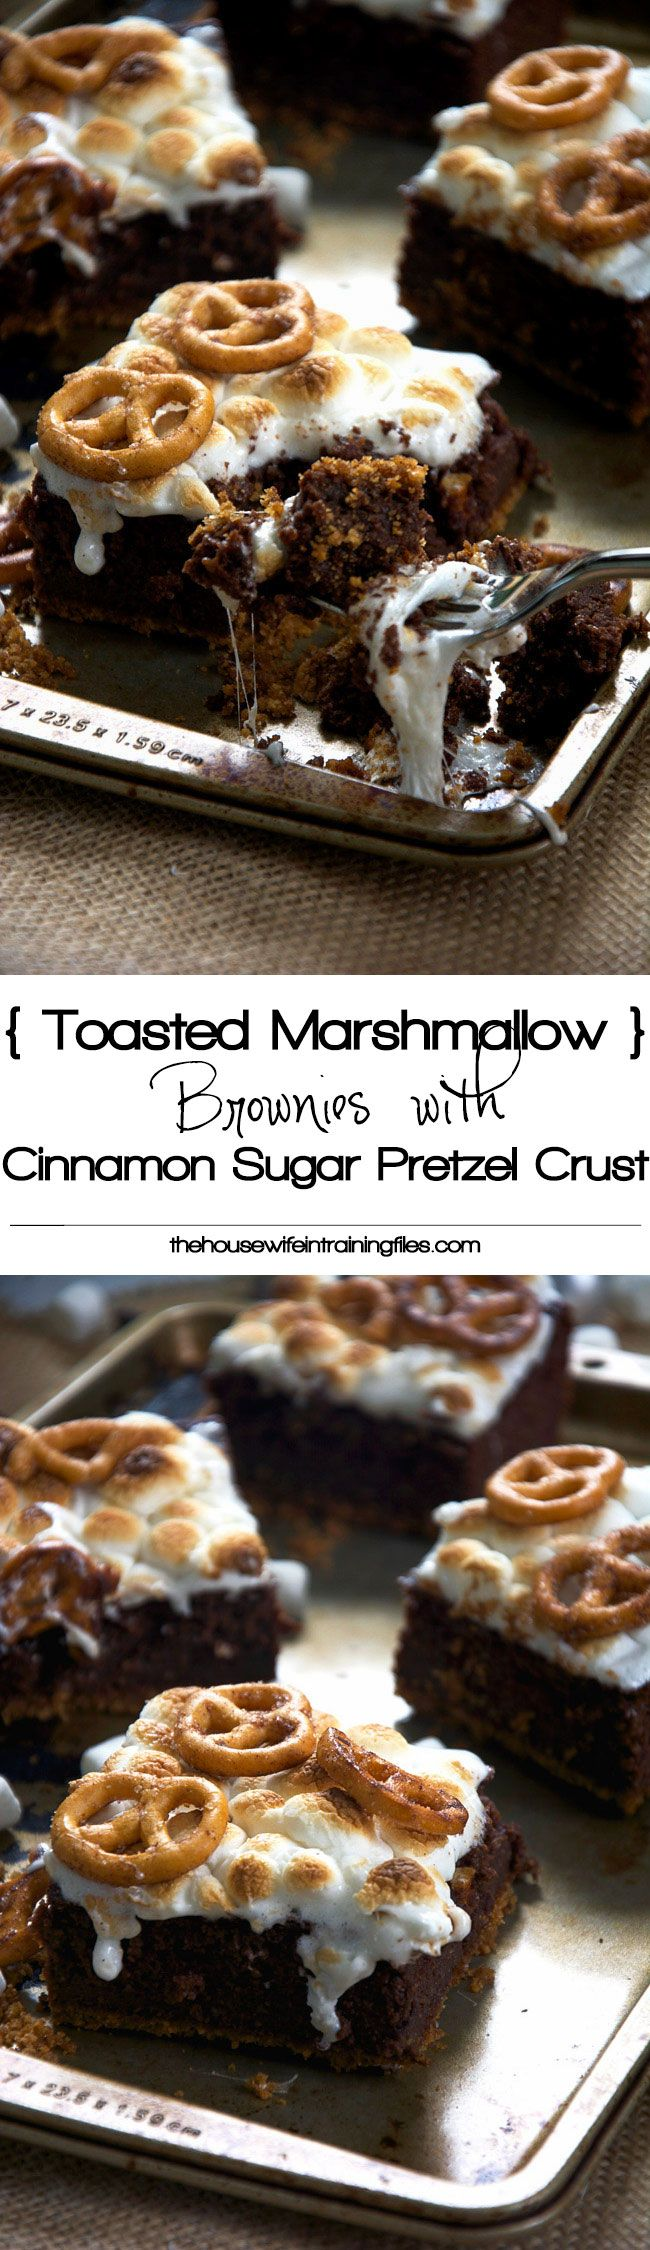 Toasted Marshmallow Brownies with Cinnamon Sugar Pretzel Crust and the best part is, it's gluten-free!